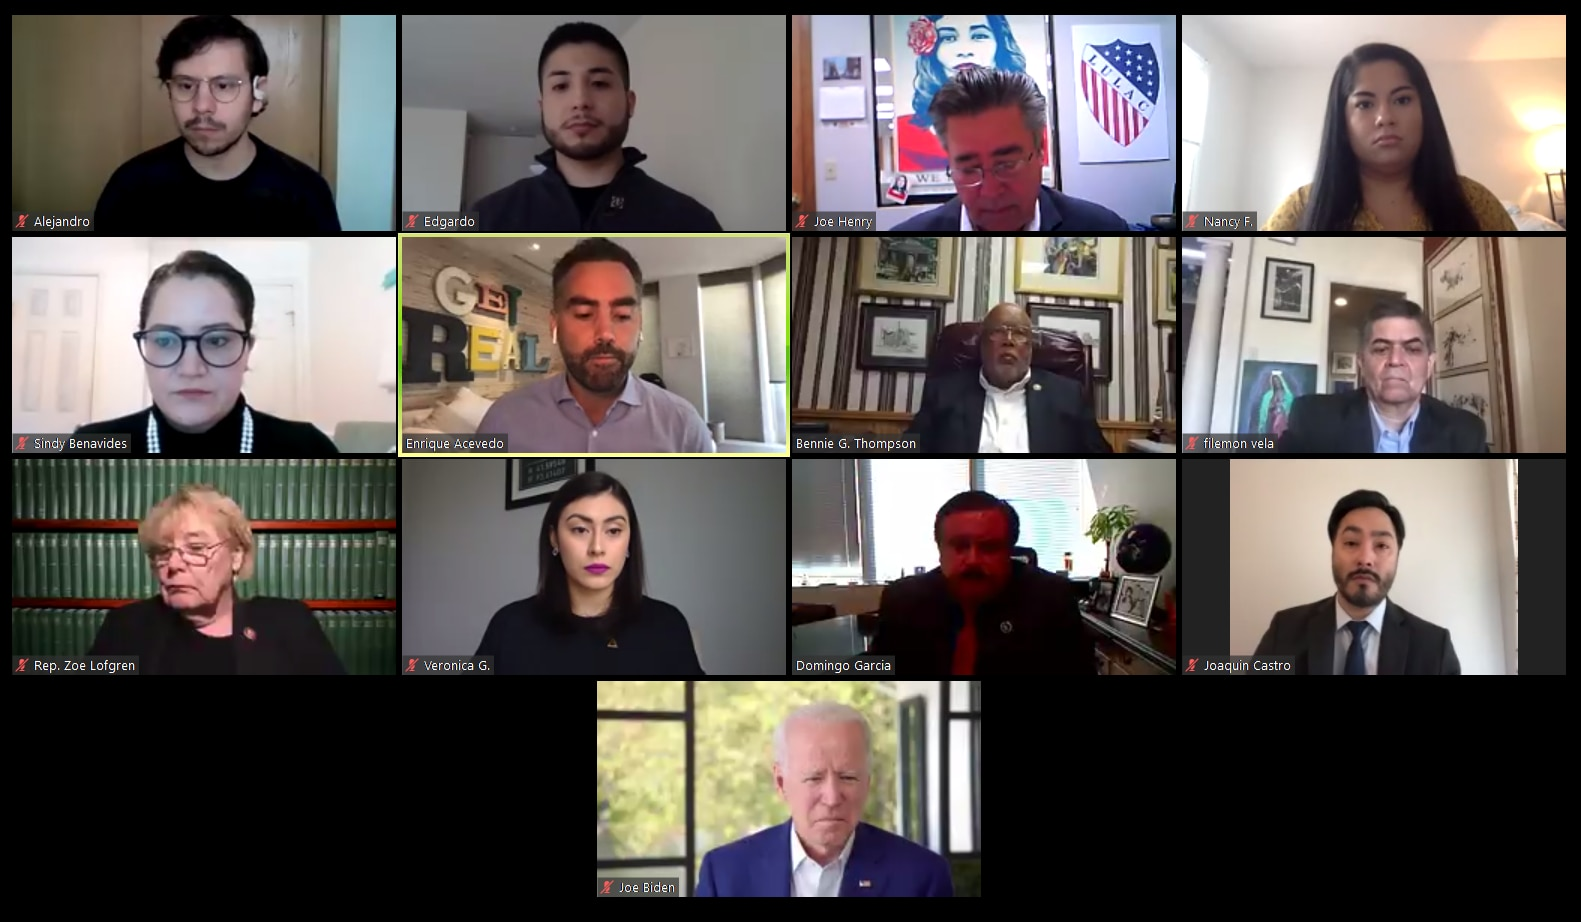 Joe Biden (bottom center) participated in a Zoom call hosted by LULAC on May 4, 2020.